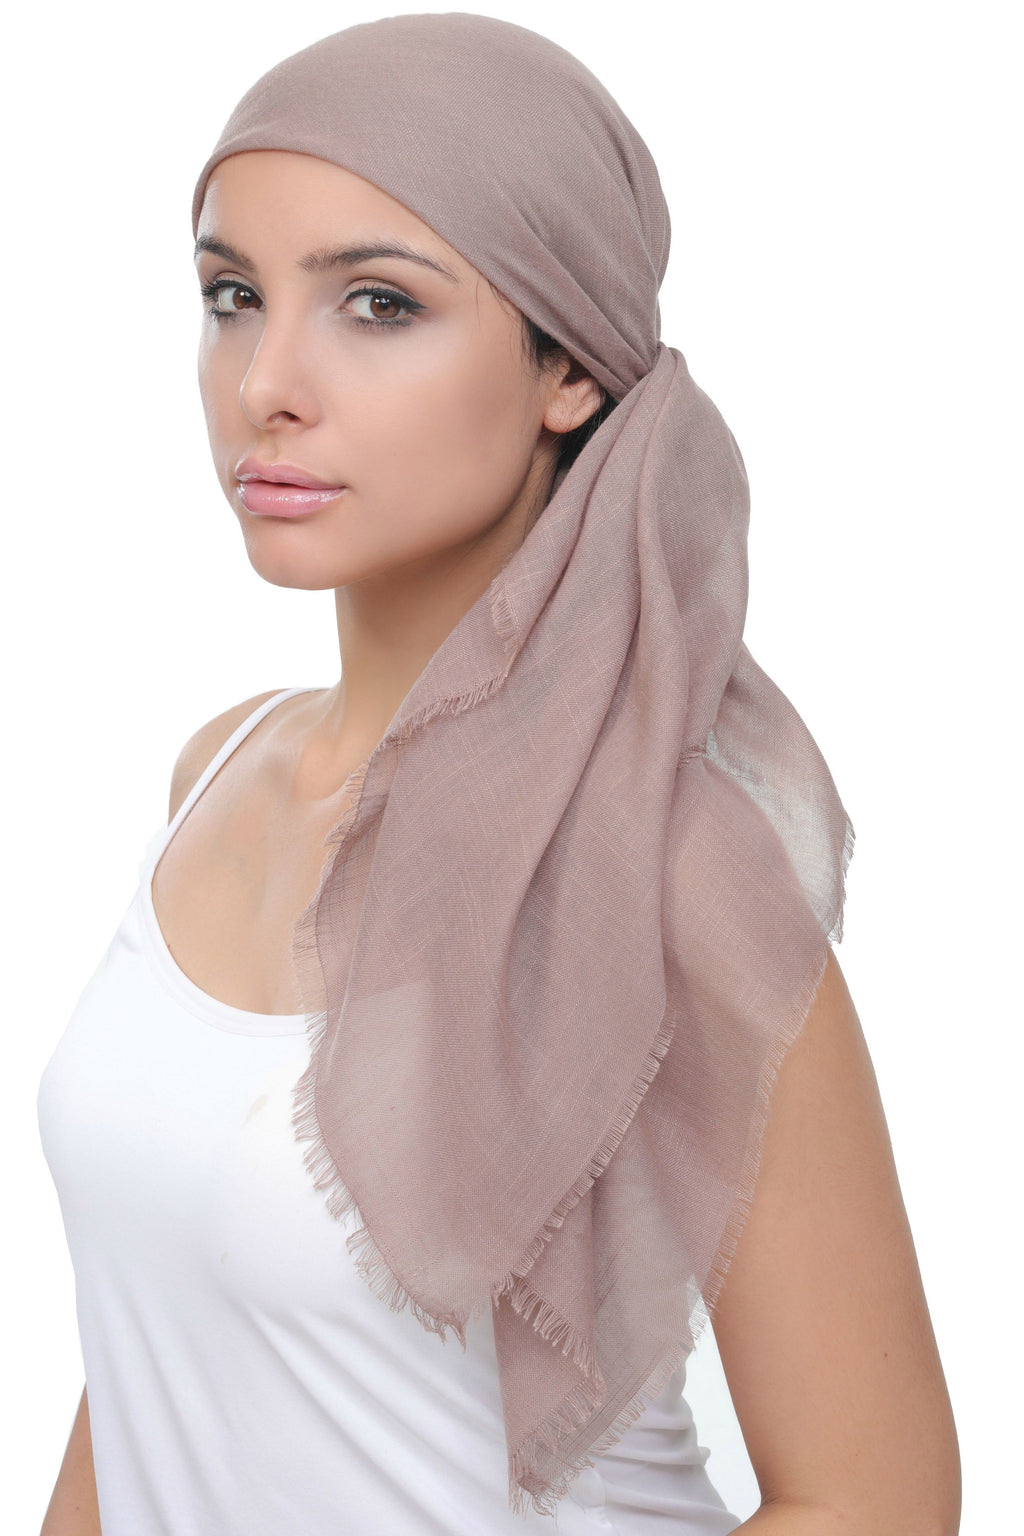 Deresina Four Seasons Square Chemo Headscarf Beige Linen Printed